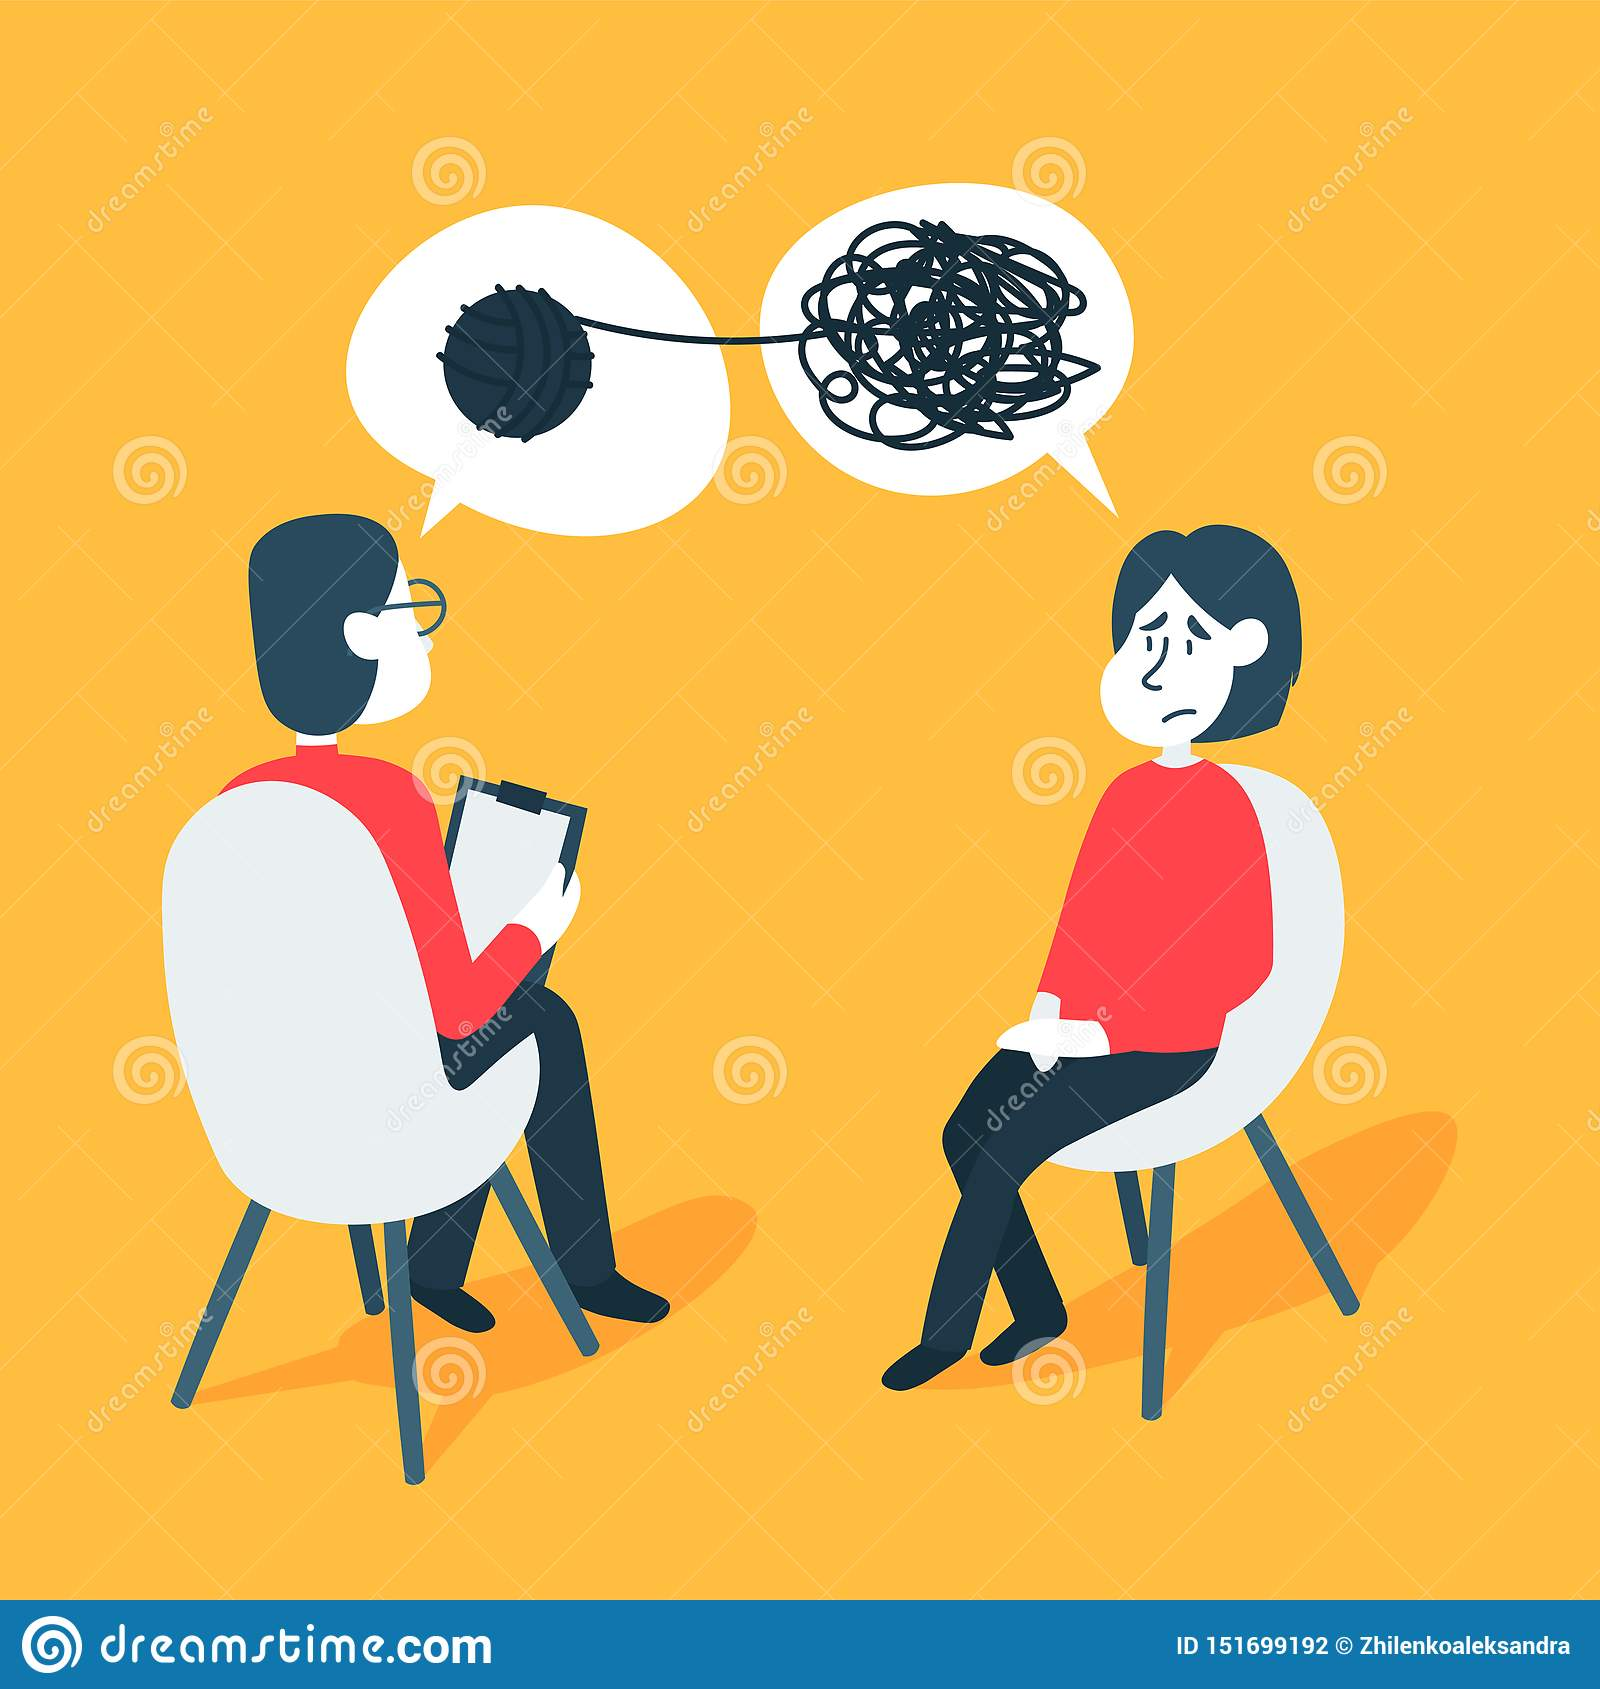 Psychotherapy counseling concept. Psychologist man and young woman patient in therapy session. Treatment of stress